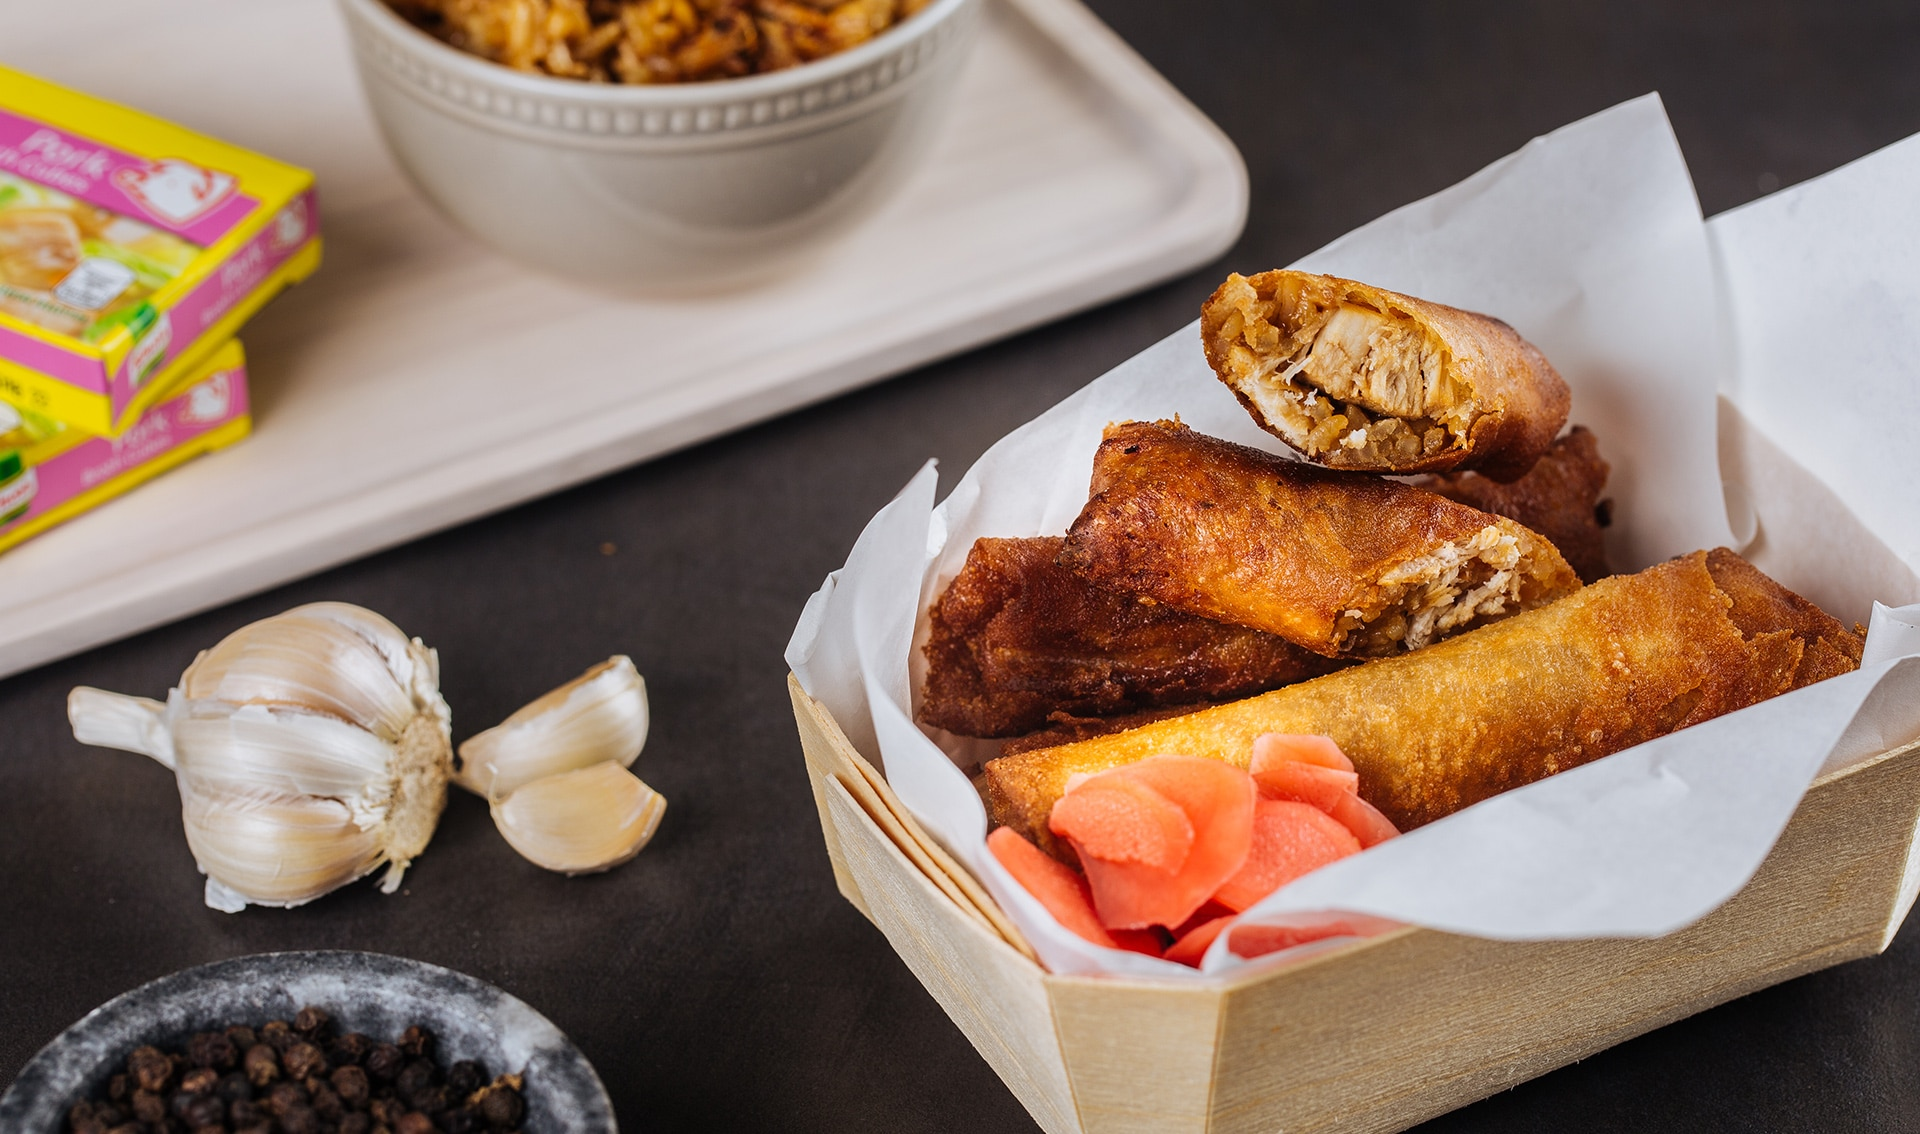 This adobo rice lumpia recipe pays homage to og filipino website this adobo rice lumpia recipe pays homage to og filipino website panlasang pinoy ccuart Images